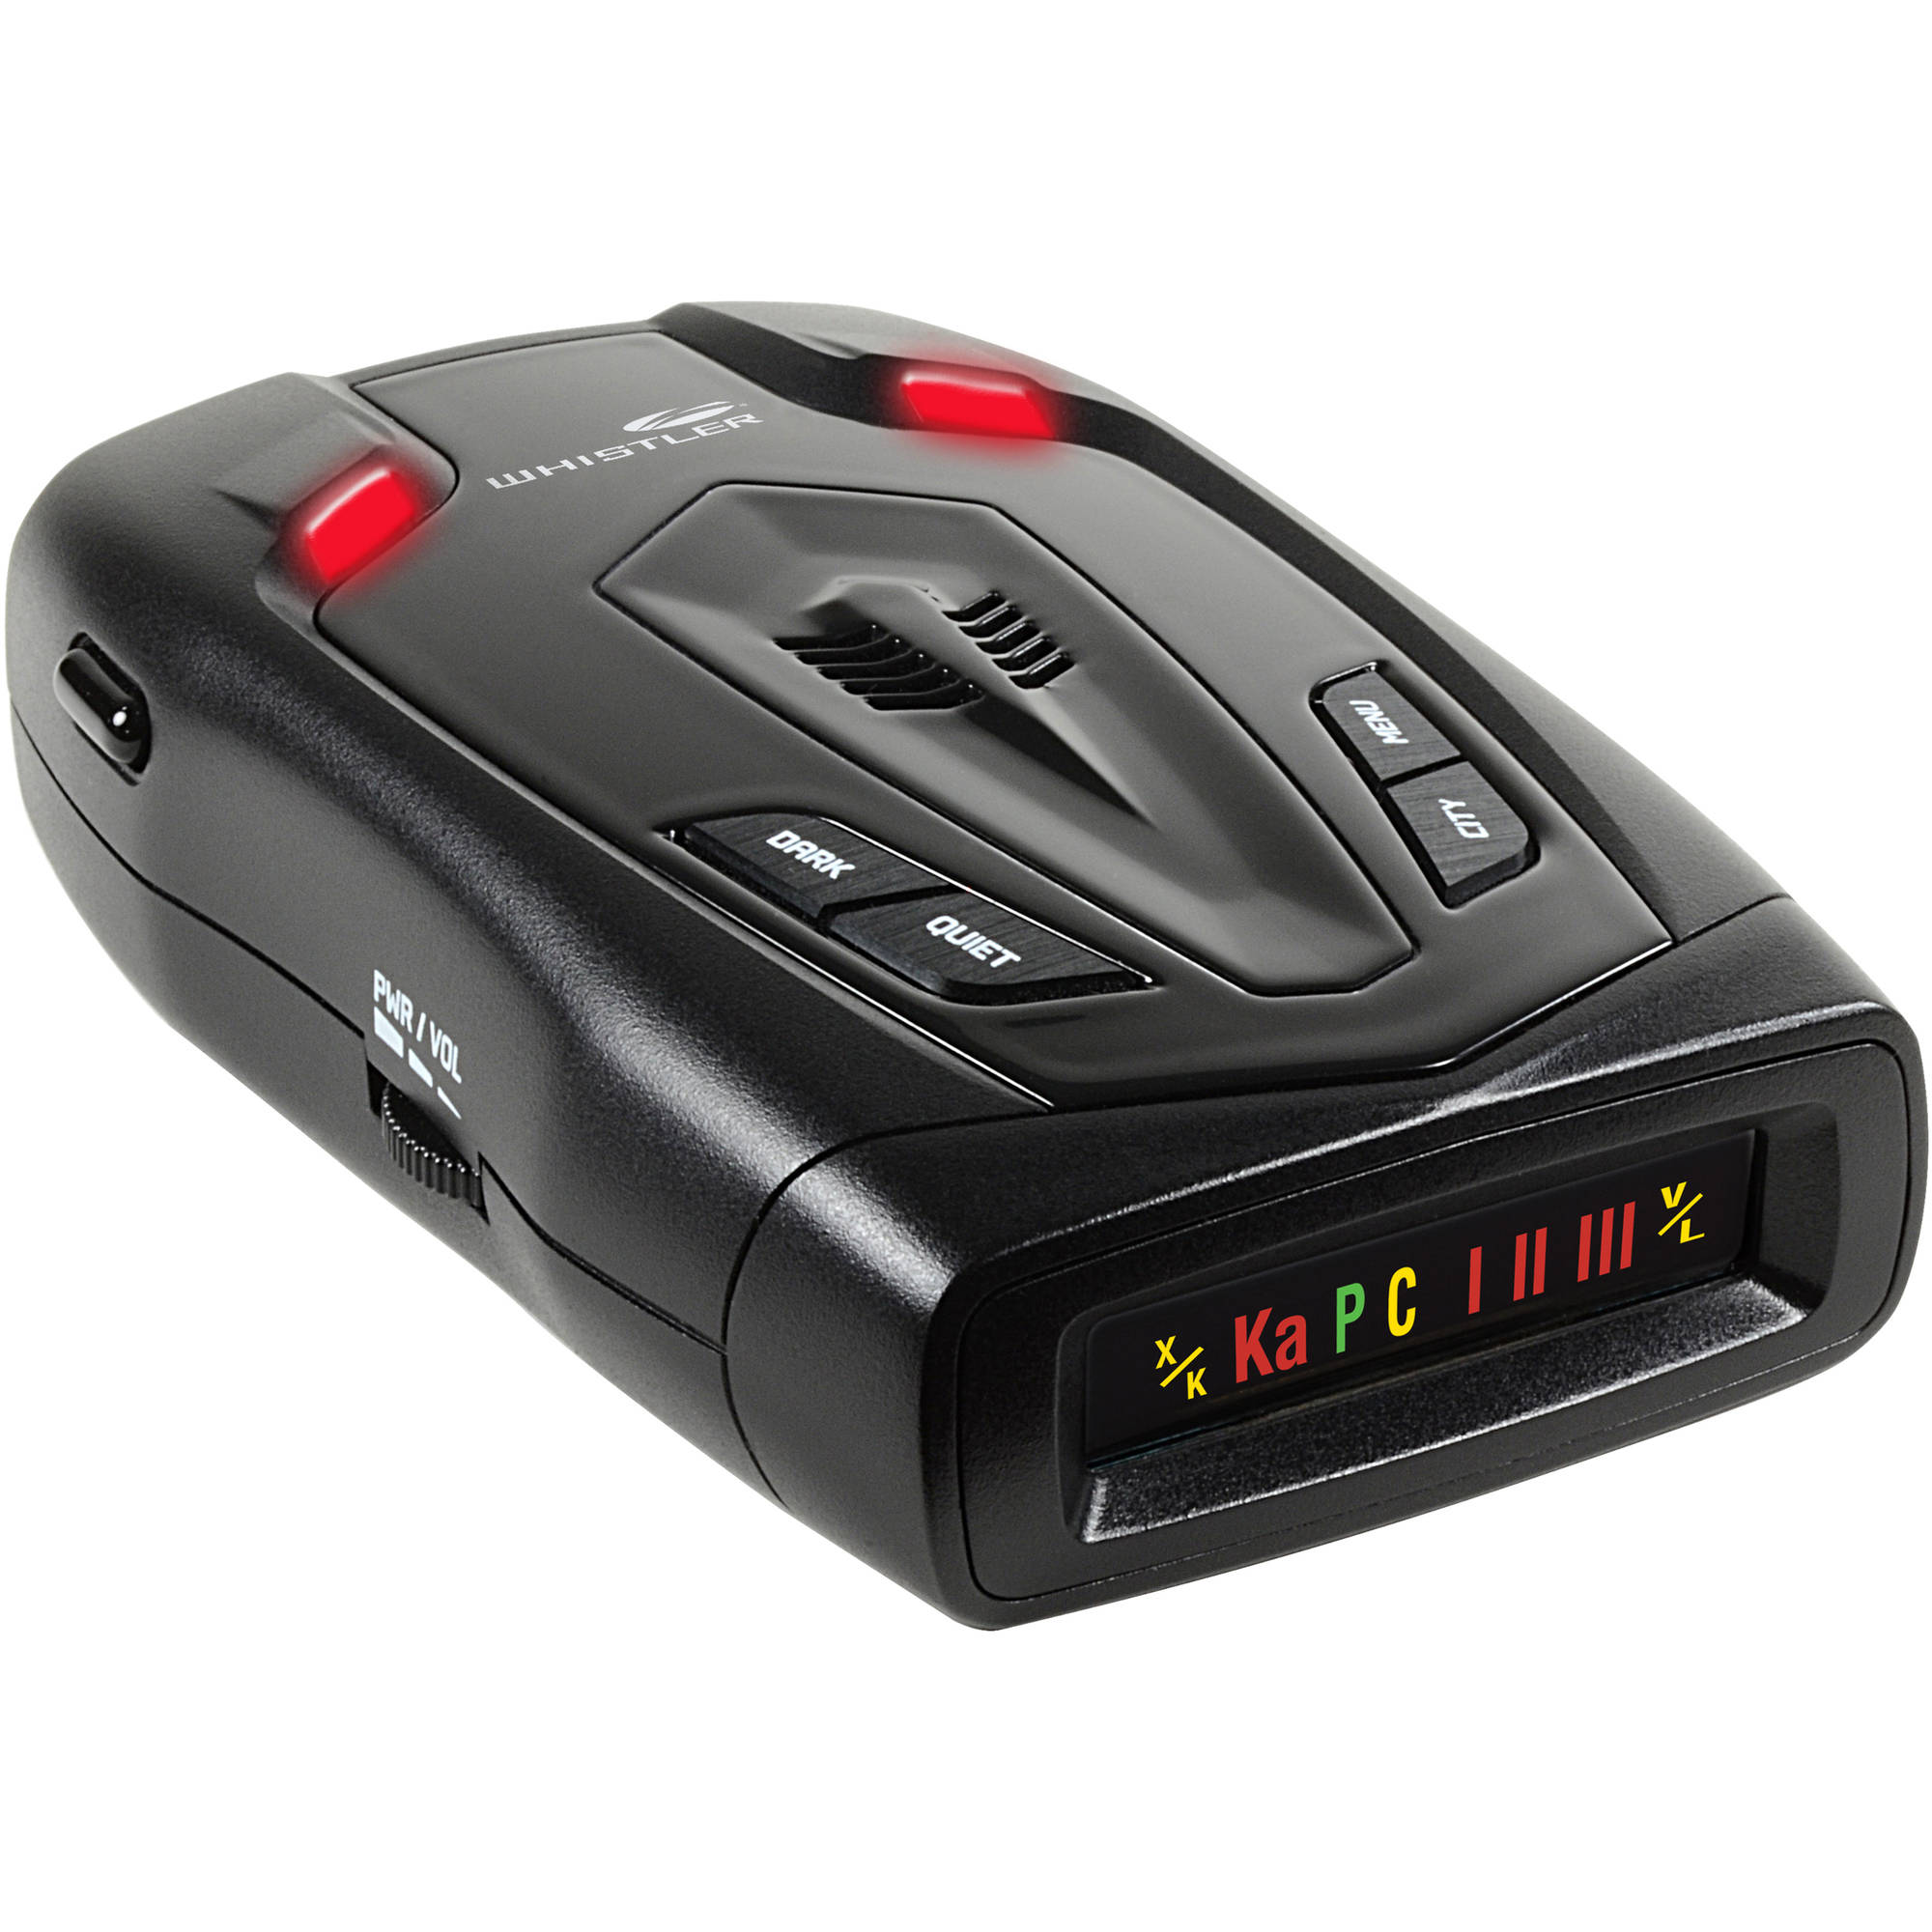 Whistler Z-11R+ High Performance Laser-Radar Detector